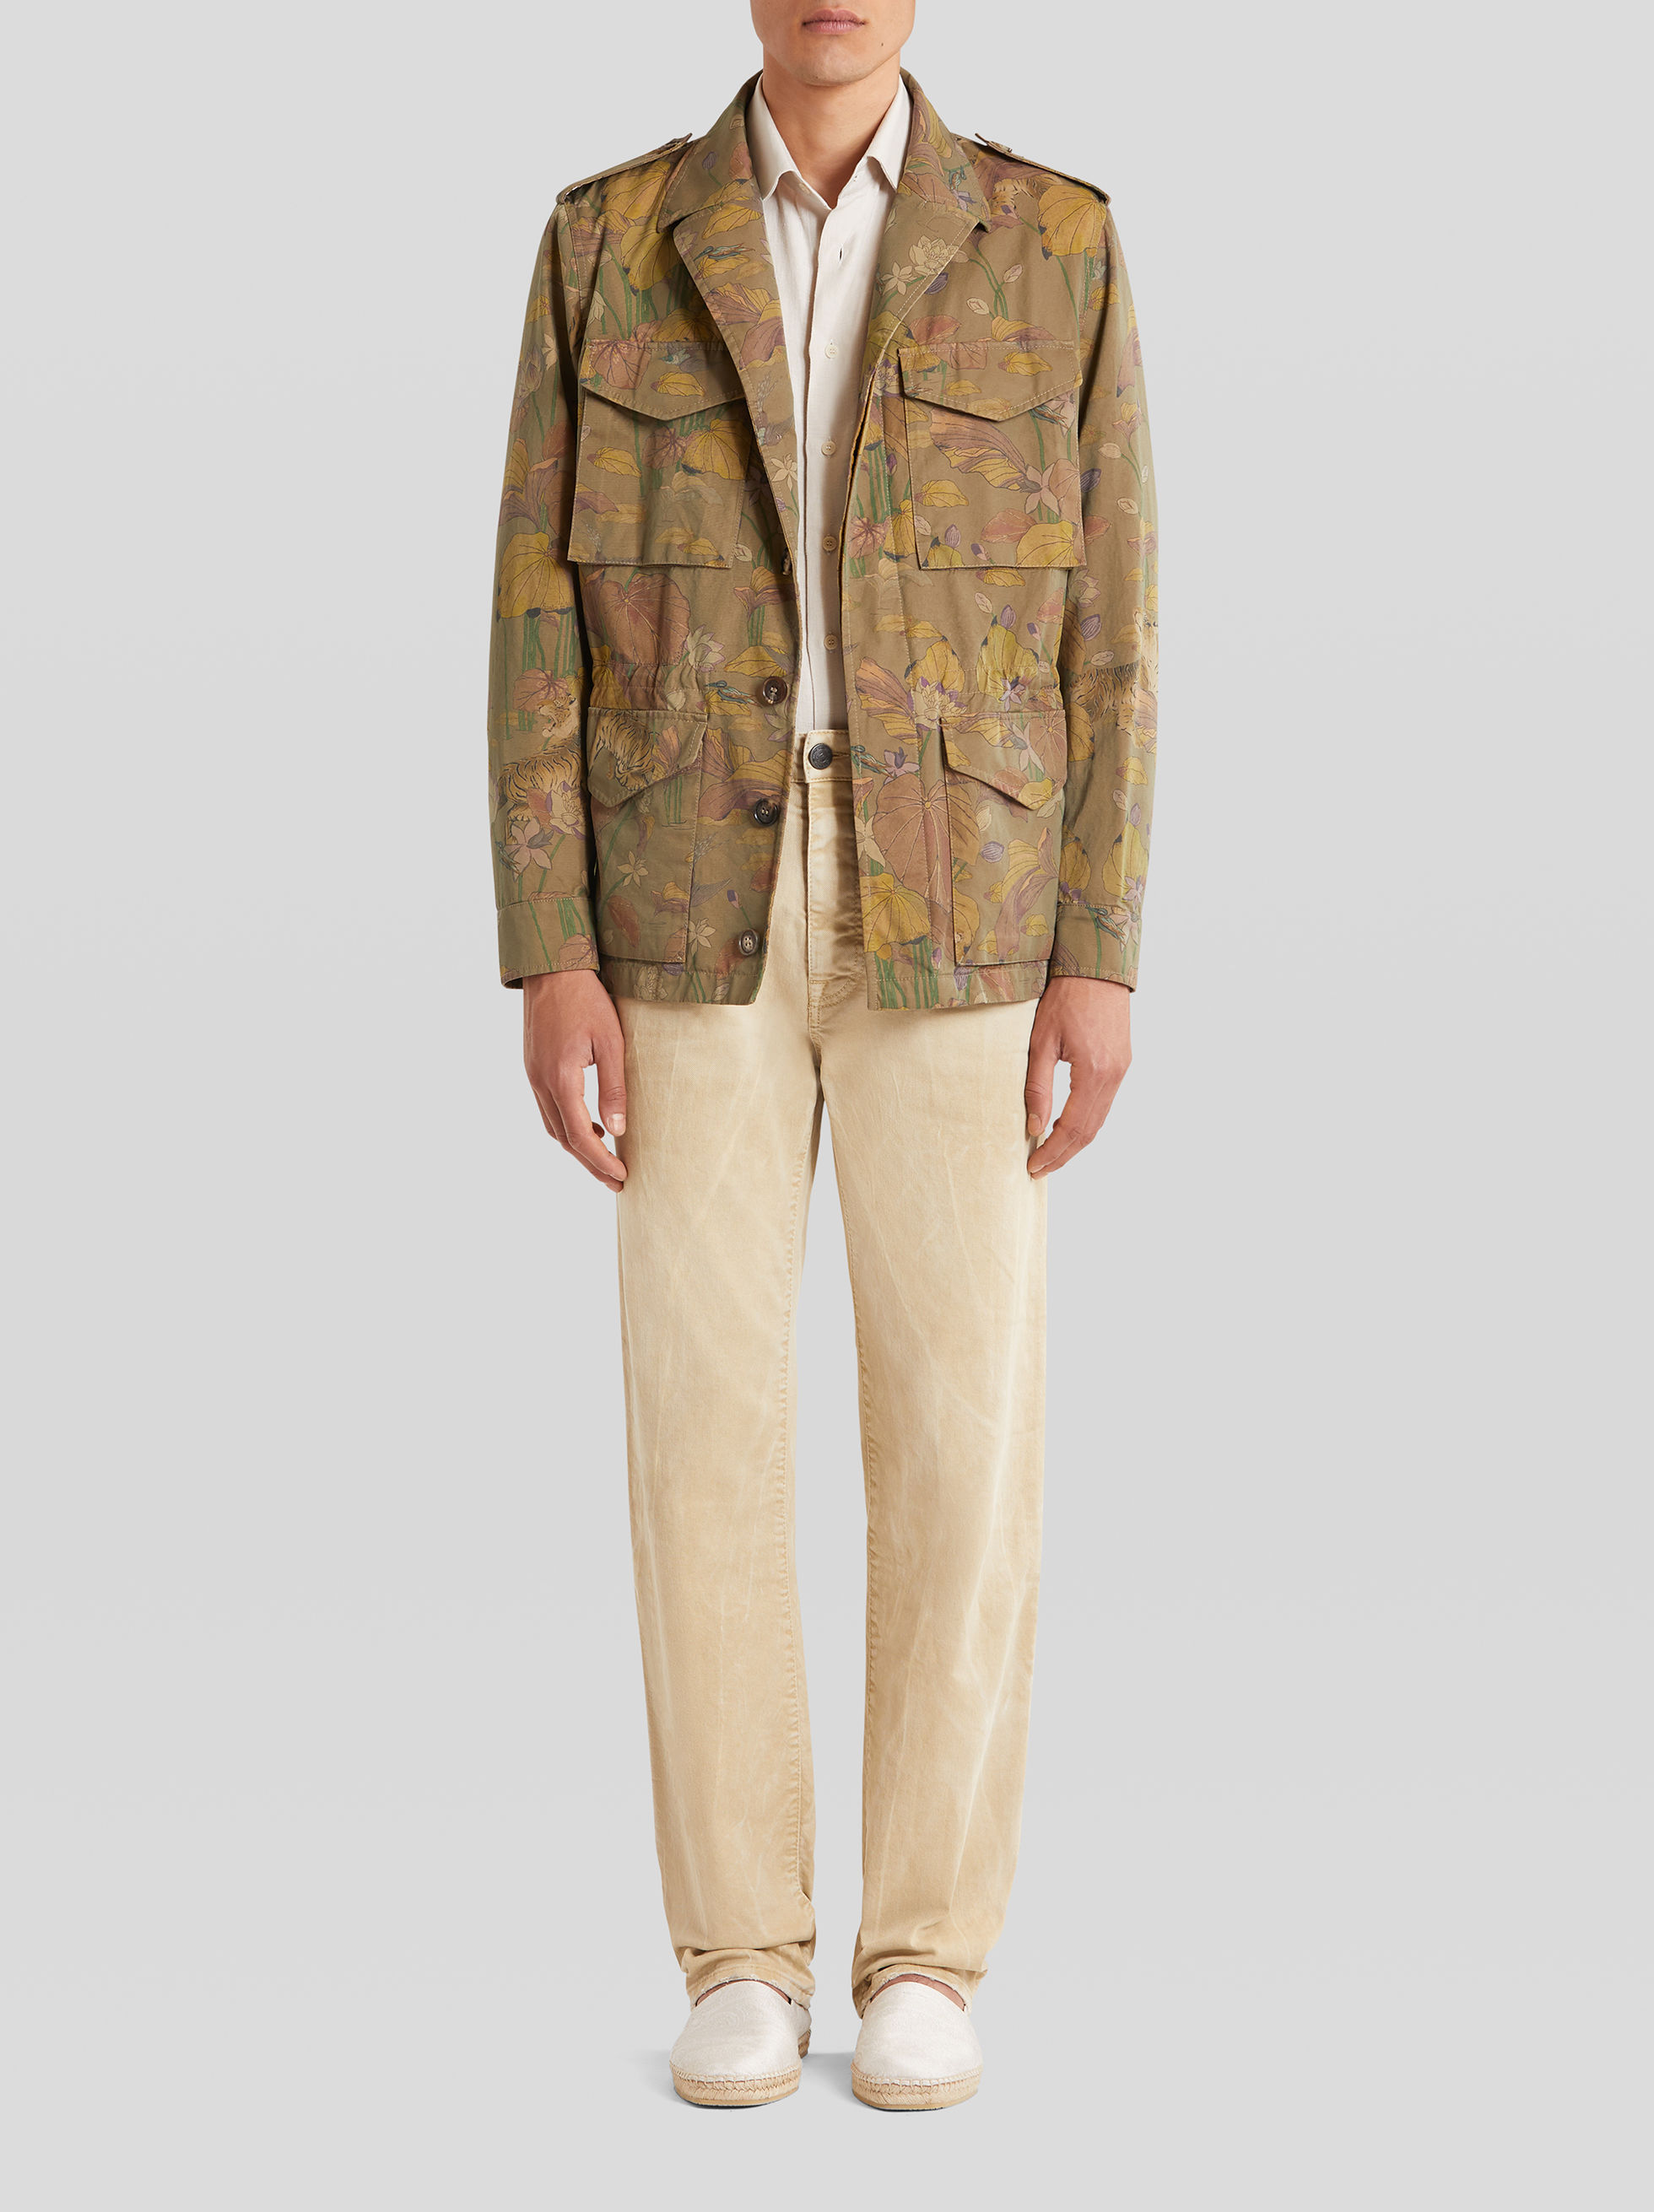 FLORAL AND TIGER PRINT COTTON SAFARI JACKET